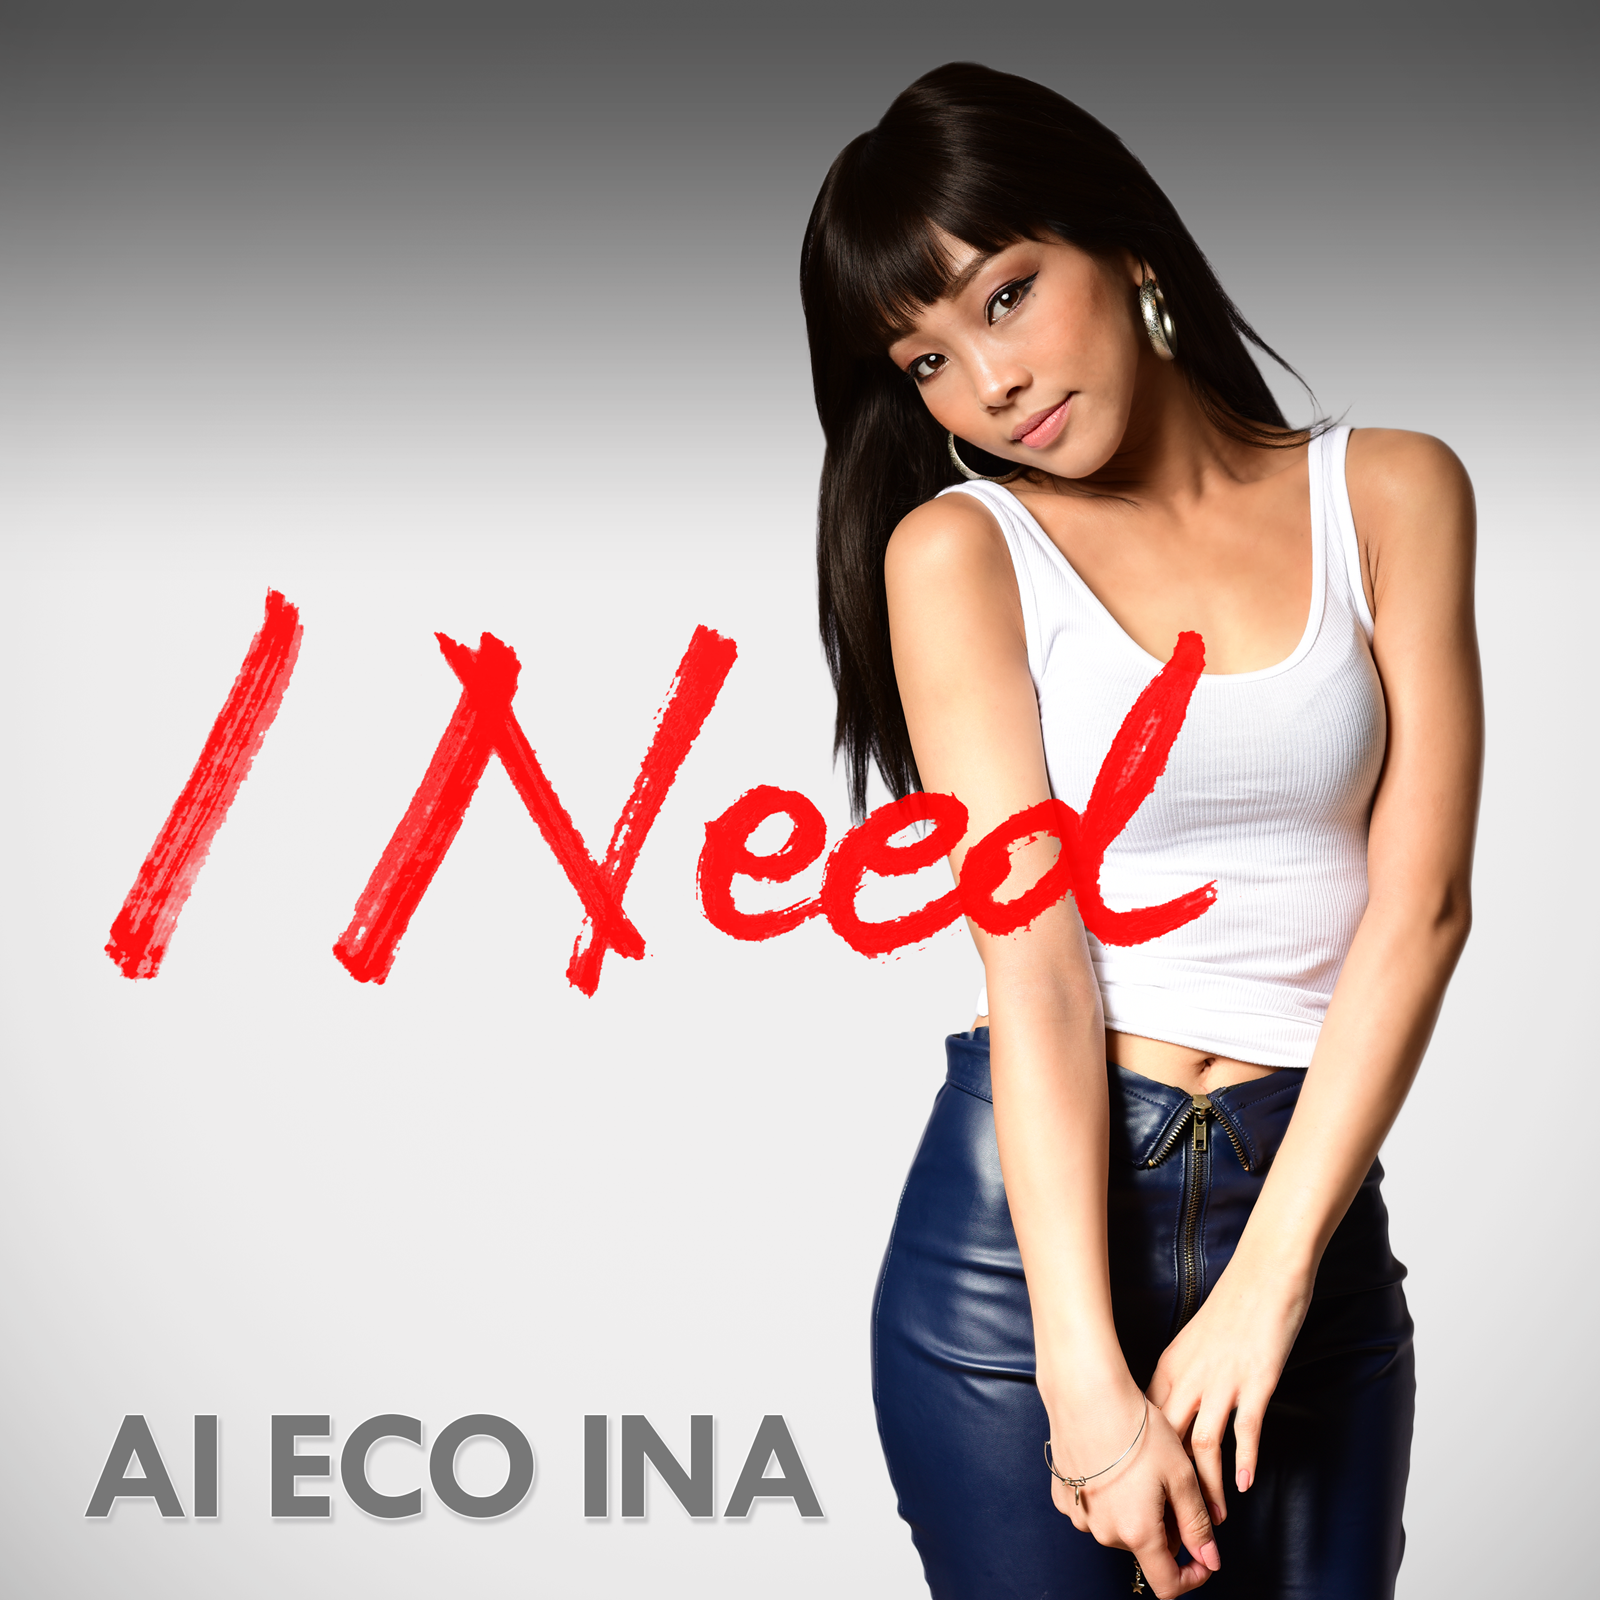 AI ECO INA / I Need - Single / 2016.09